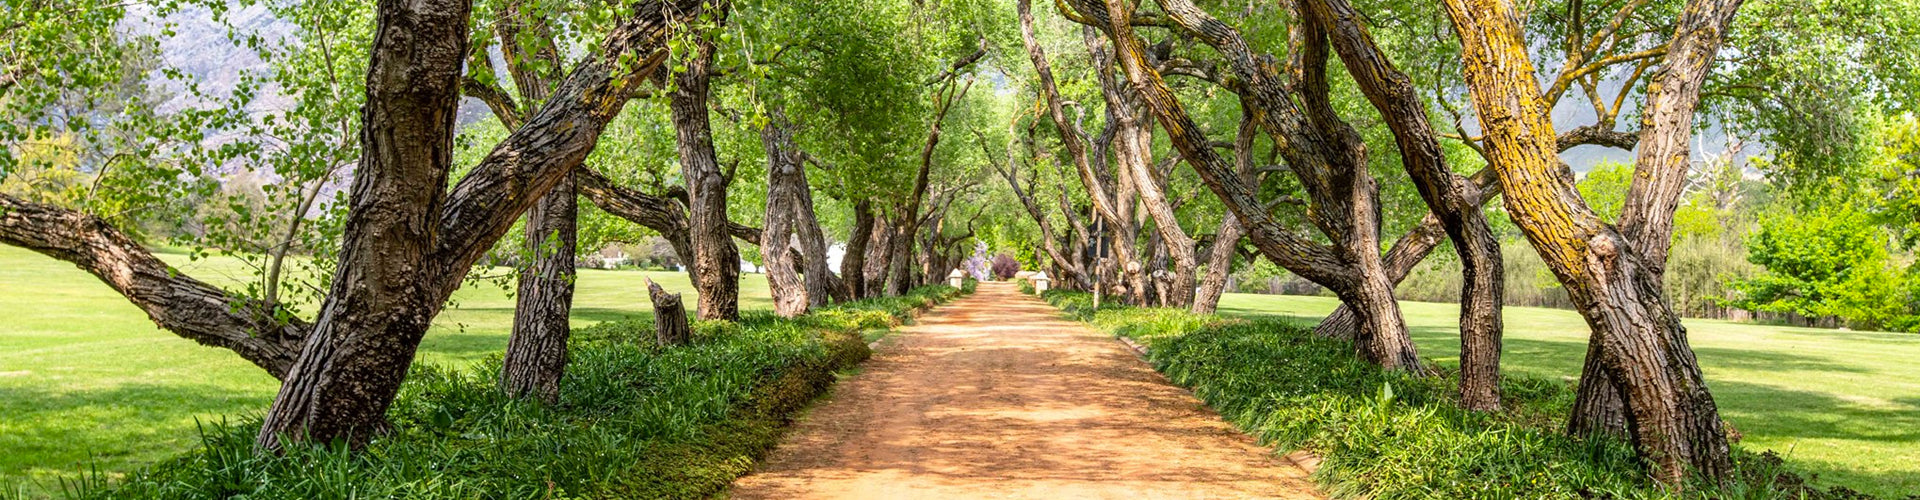 The tree-lined driveway leading to Anthonji Rupert Wines in Franschhoek, South Africa